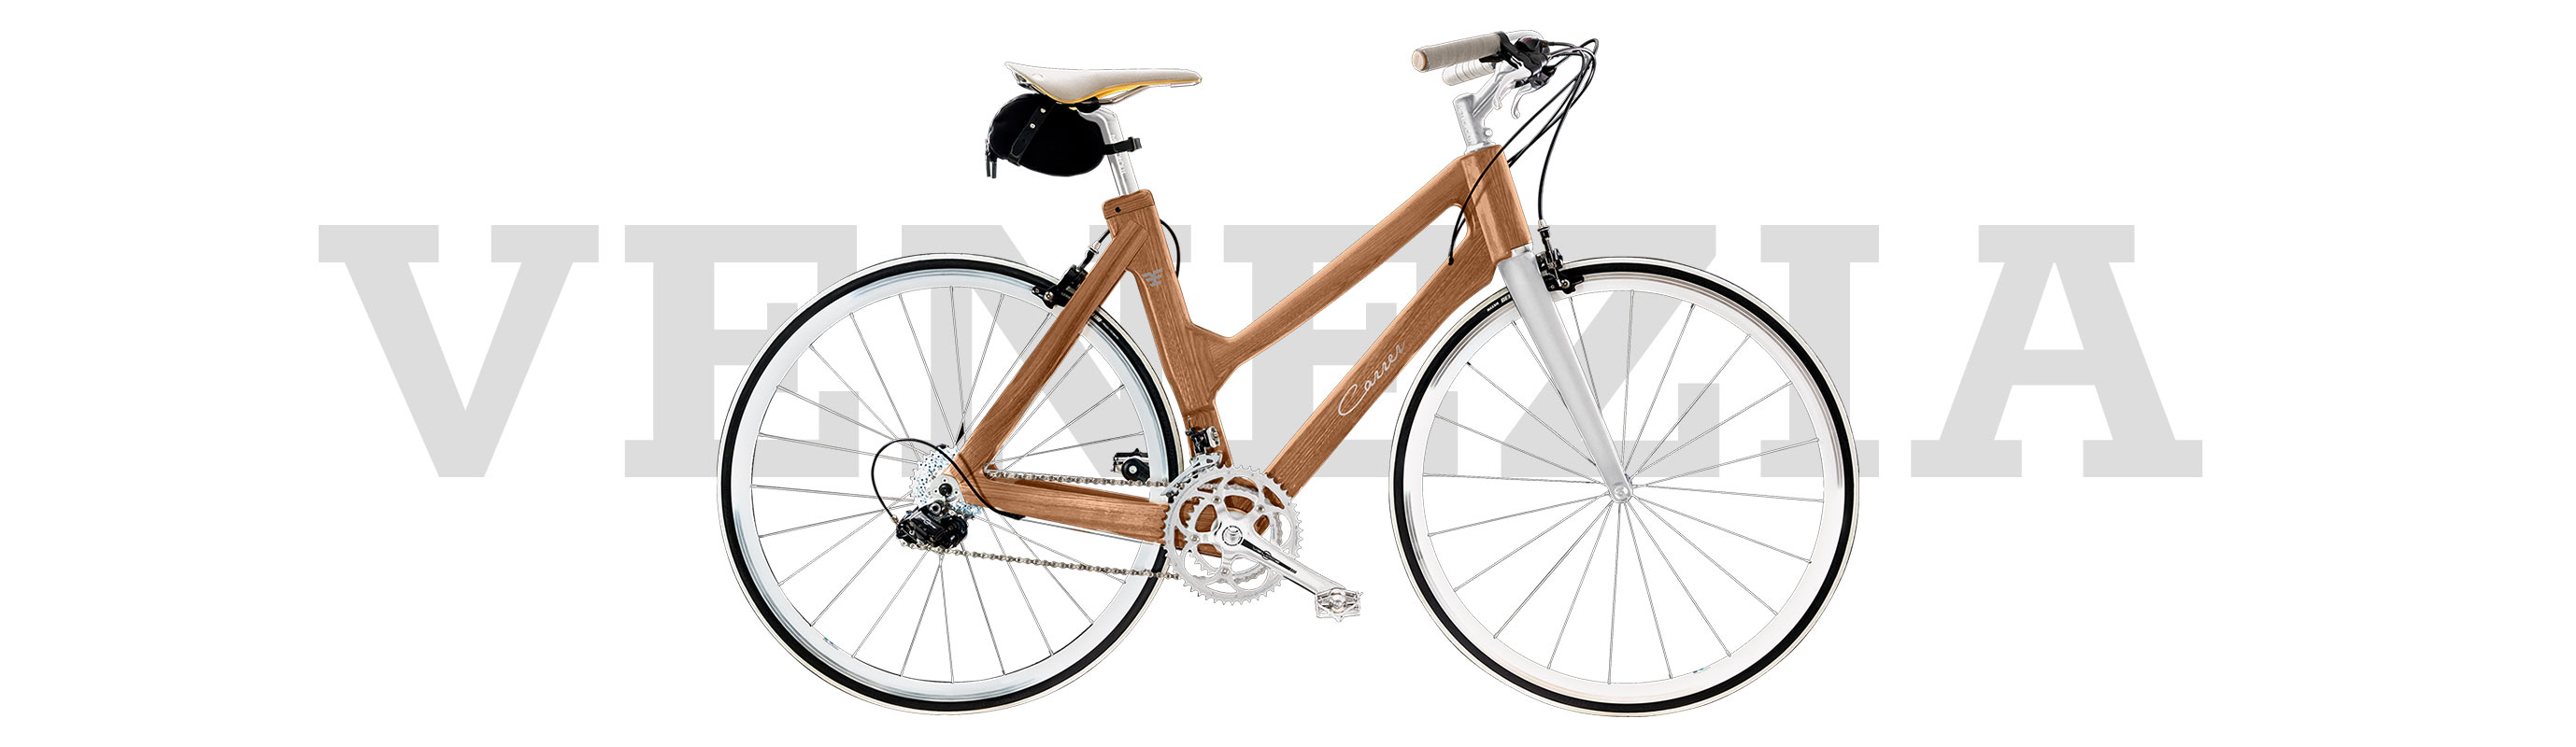 Telaio in legno tailor made per city bike Carrer da donna